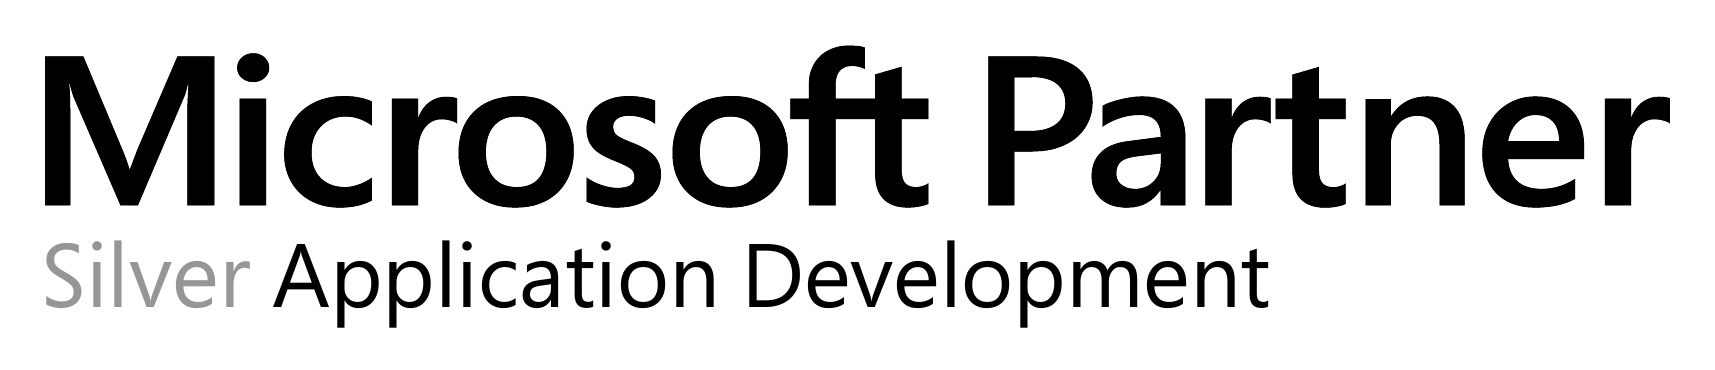 Microsoft Partner Silverlight